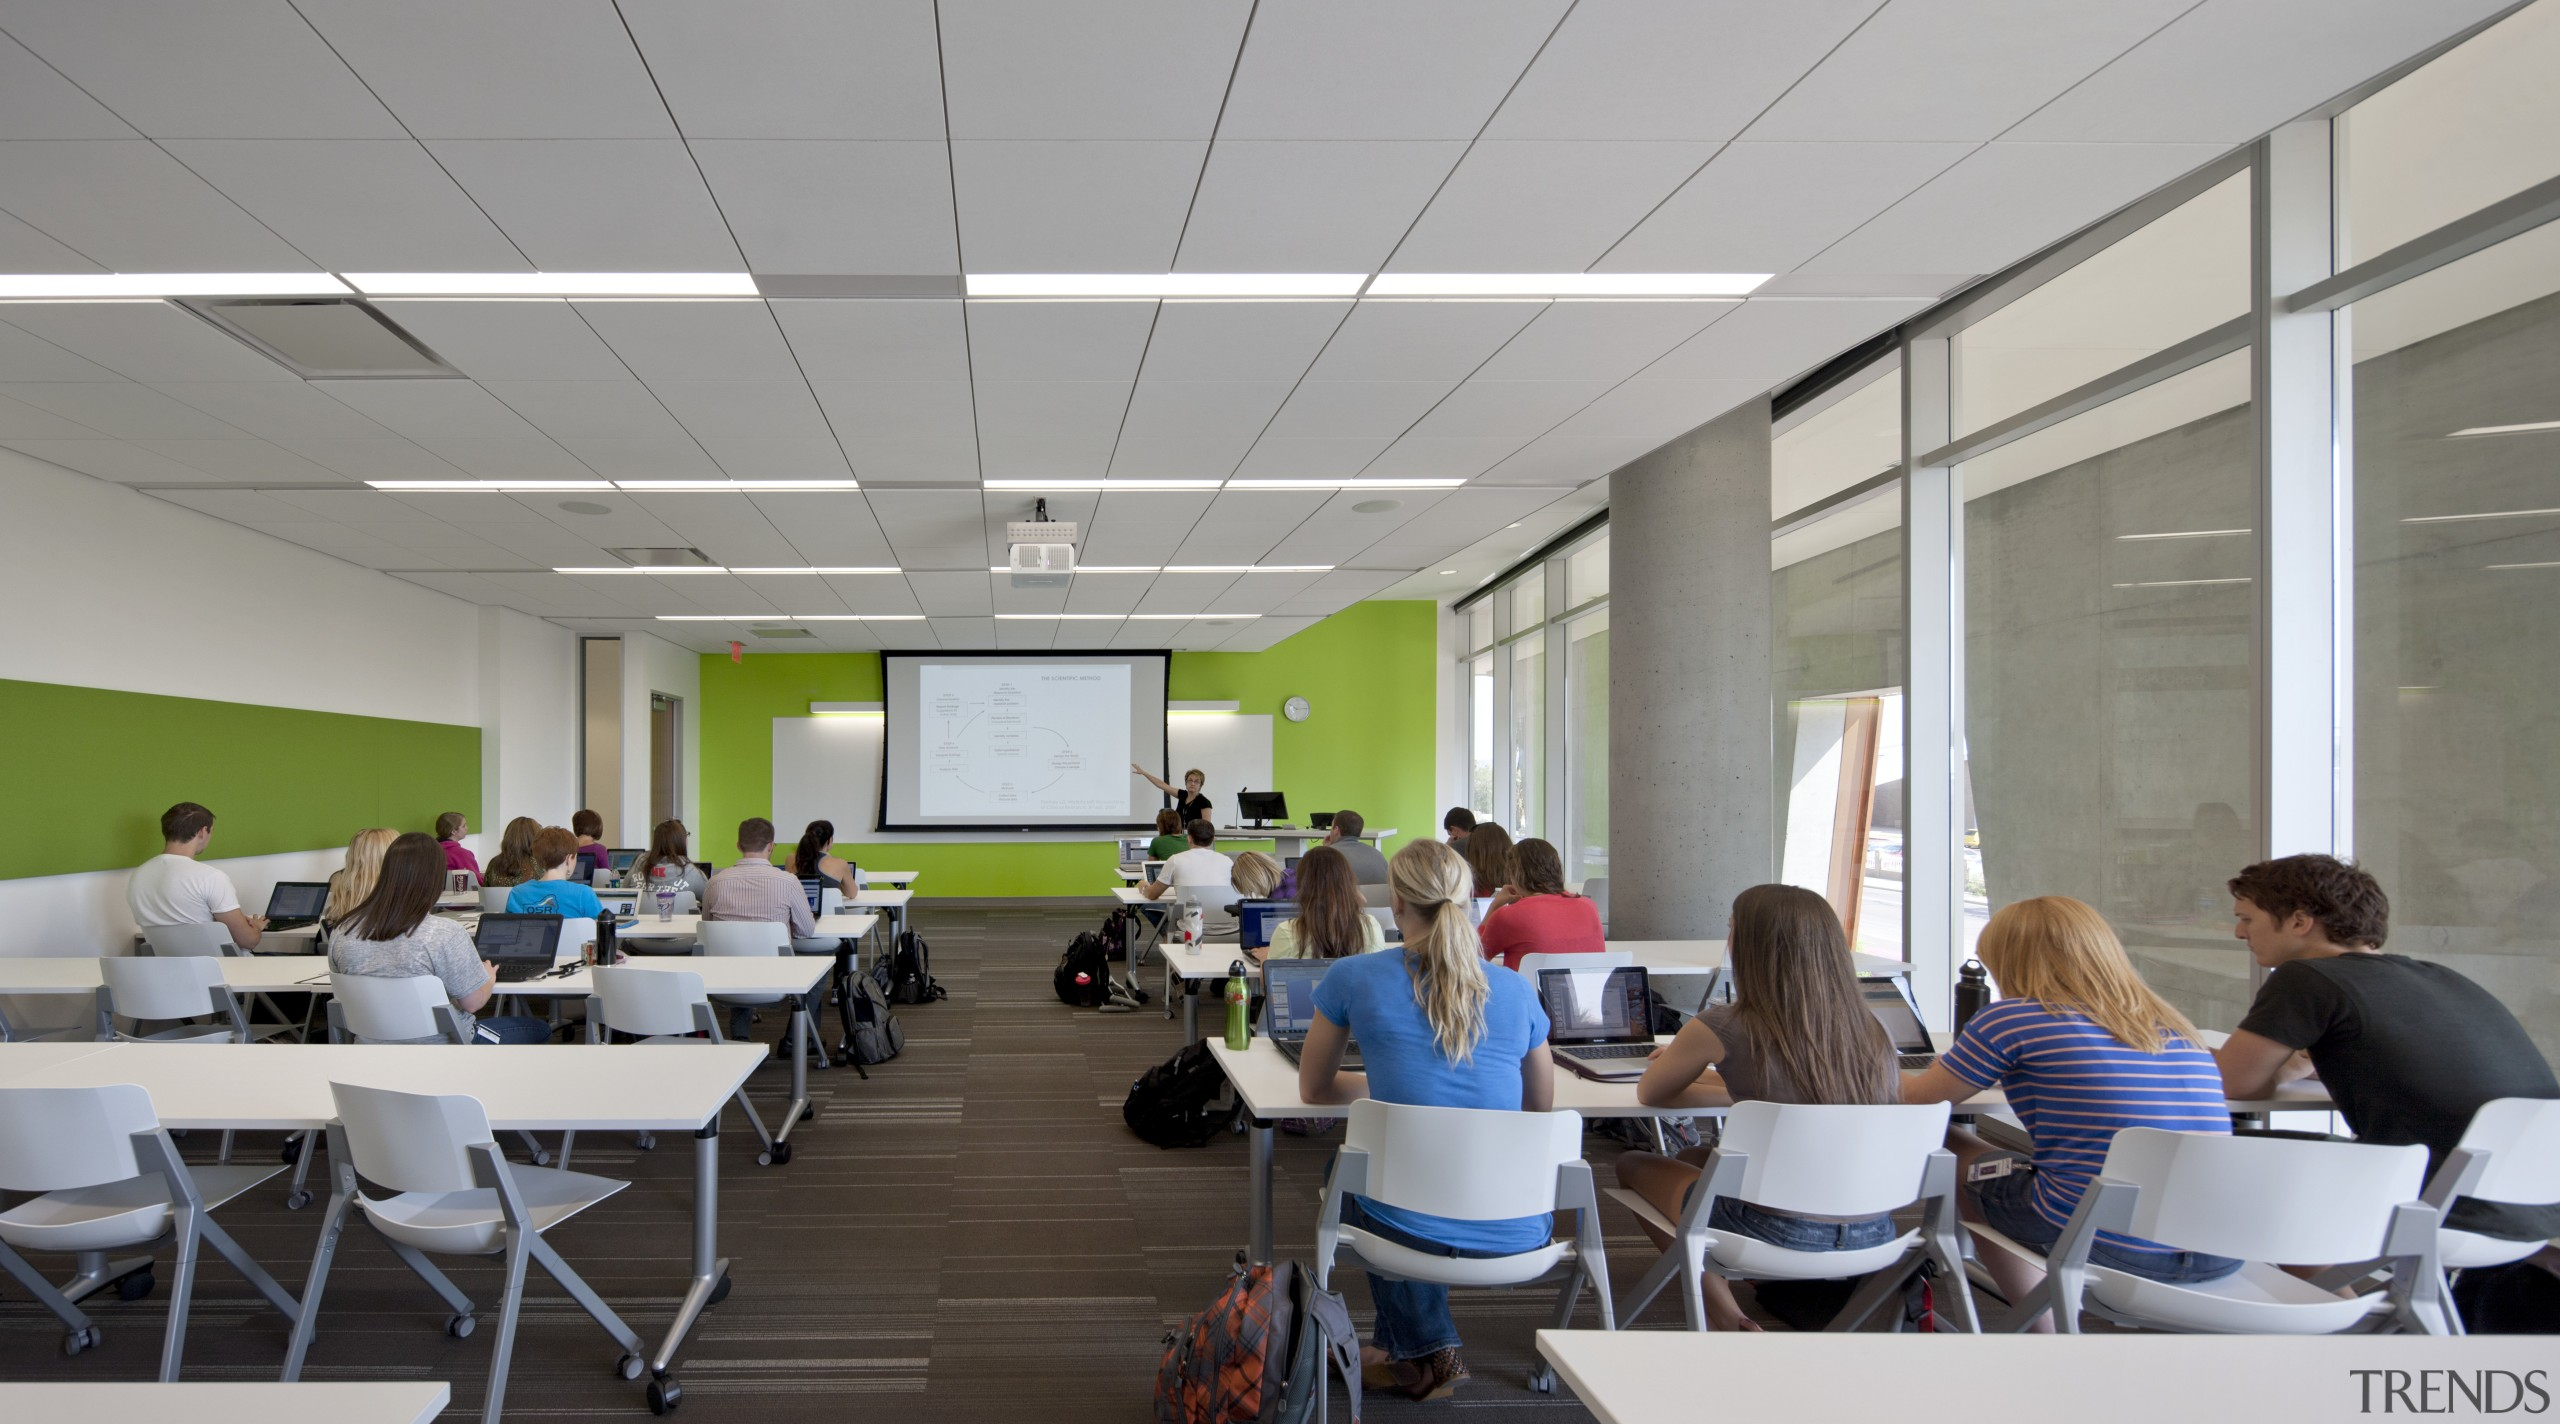 On the Health Sciences Education Building project, the classroom, institution, seminar, gray